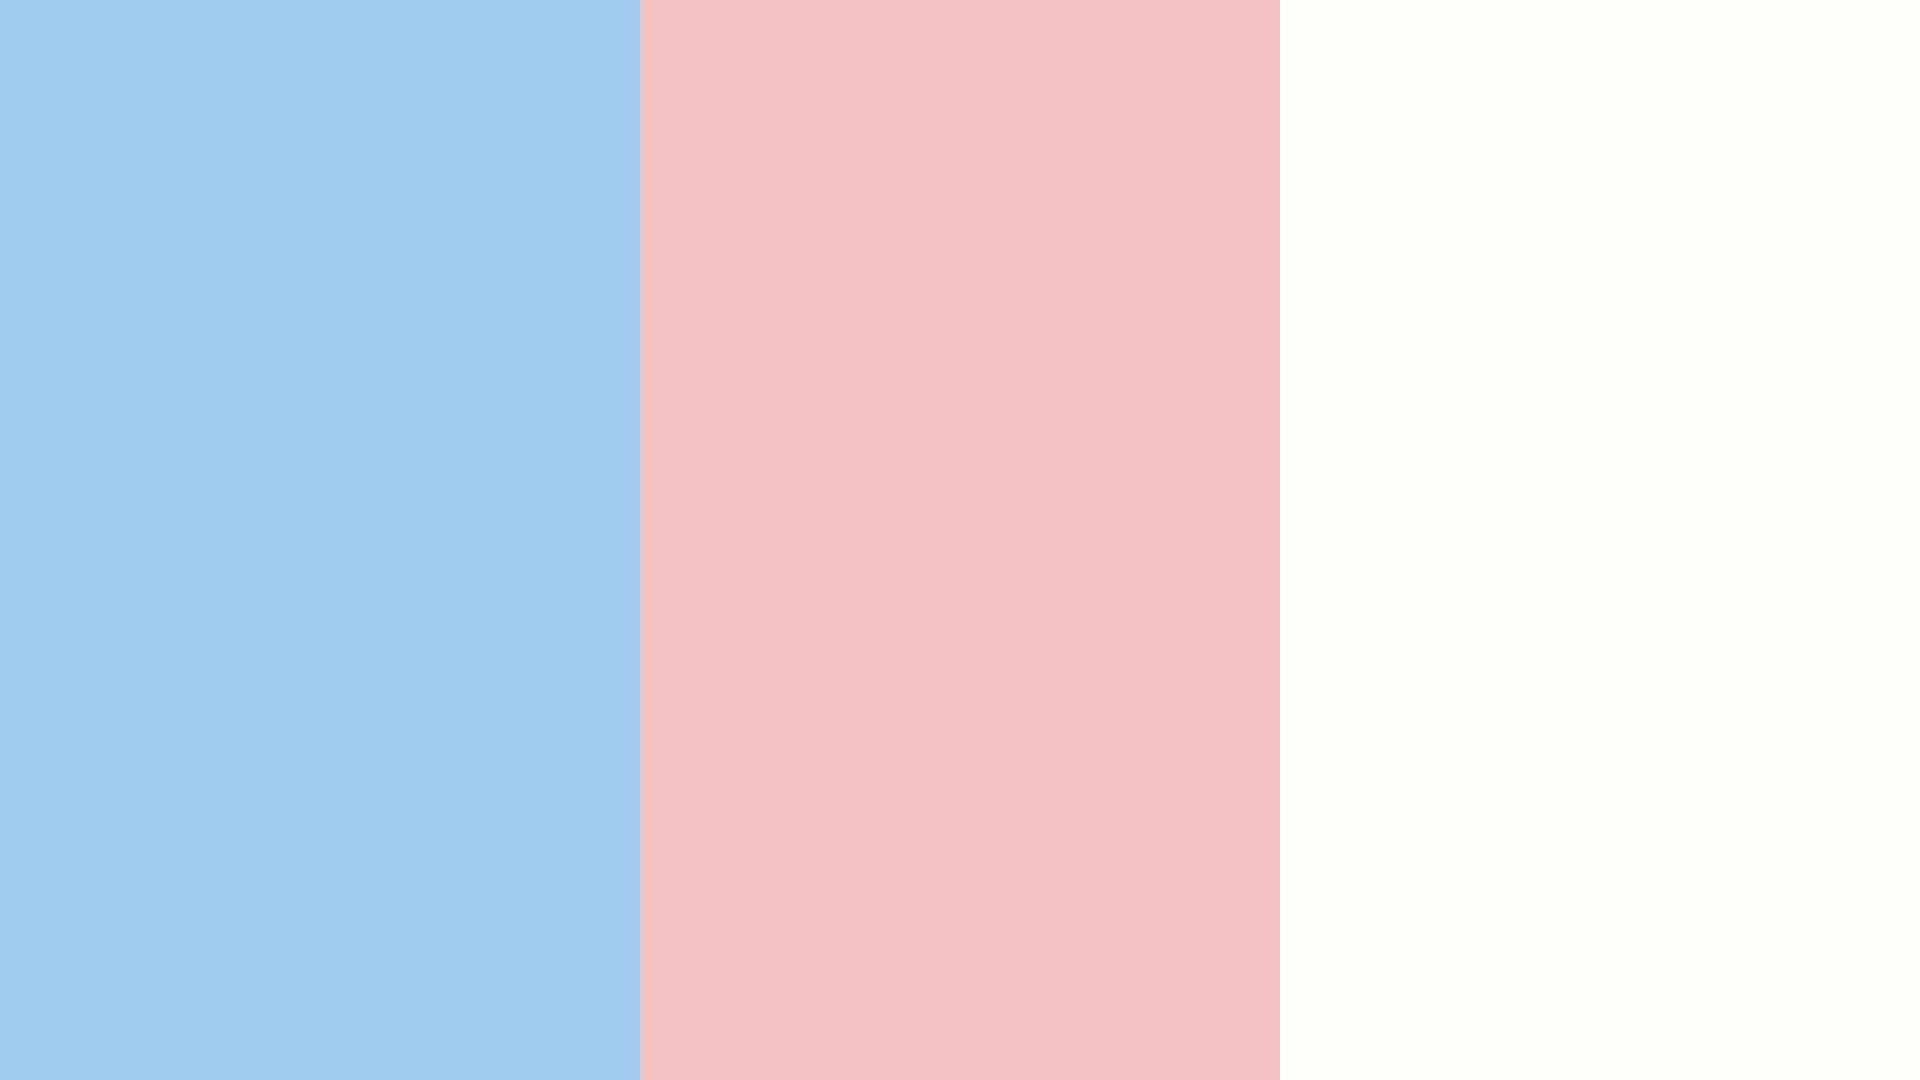 Light Blue And Pink Background Images & Pictures  Becuo